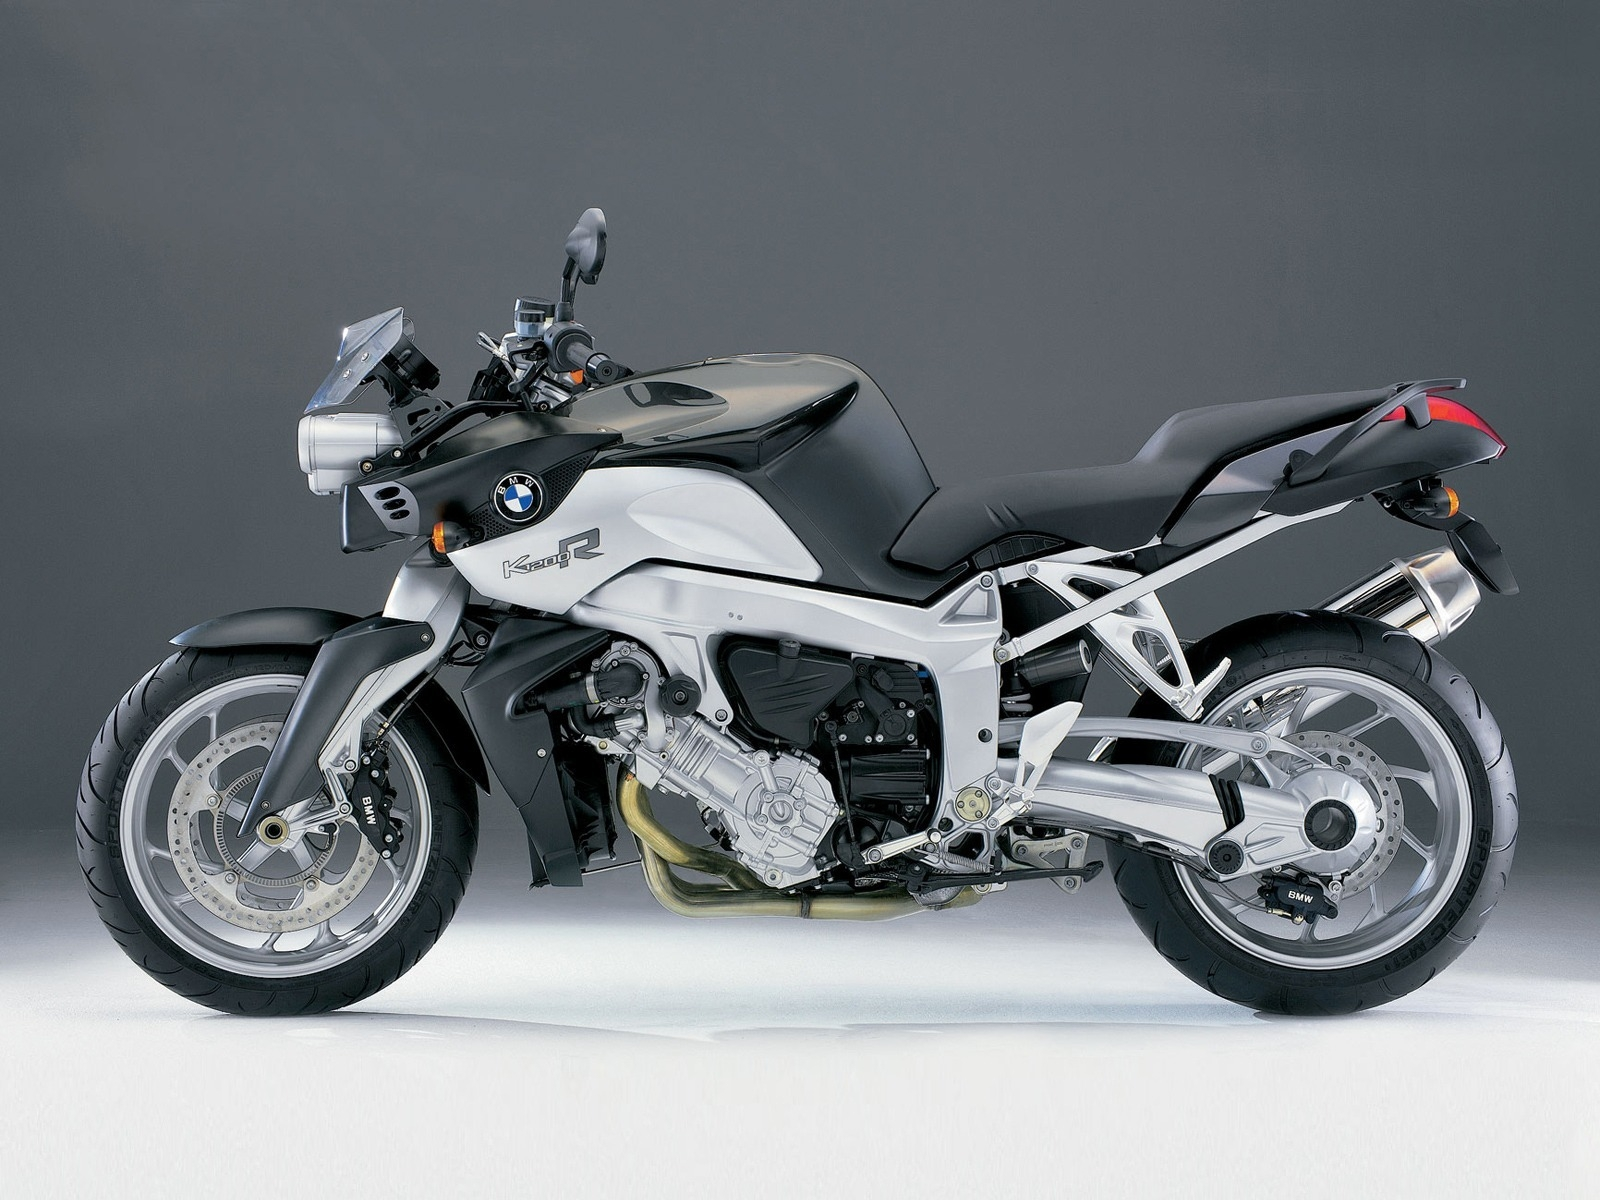 BMW K1200R for 1600 x 1200 resolution